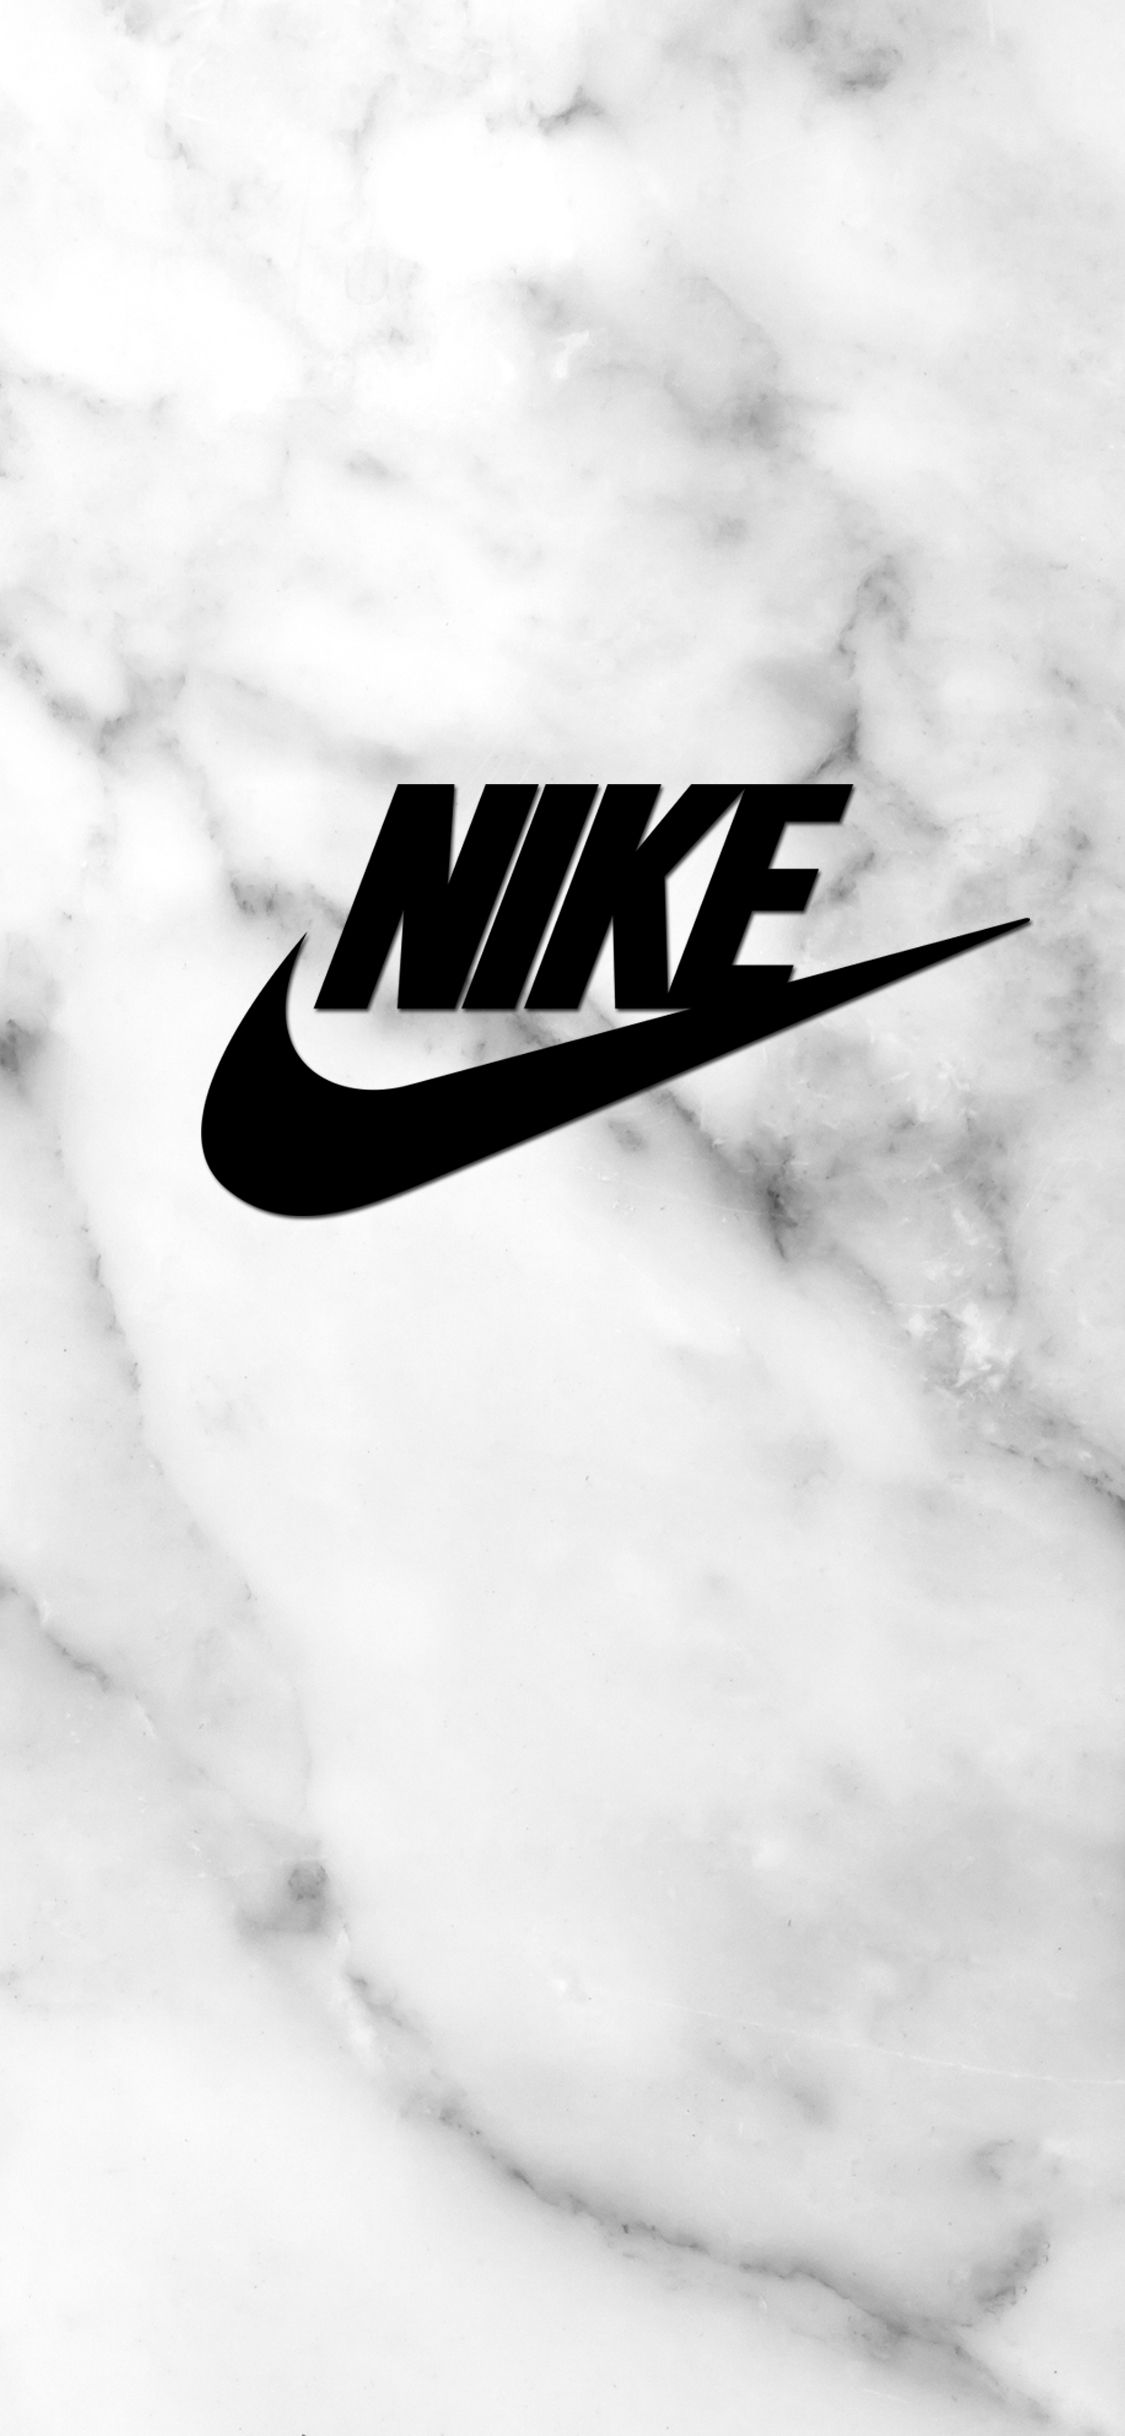 Nike Iphone X Wallpaper You Can Order Iphone Case With This Picture Just Click On Picture Nike Wallpaper Iphone Nike Wallpaper Best Iphone Wallpapers